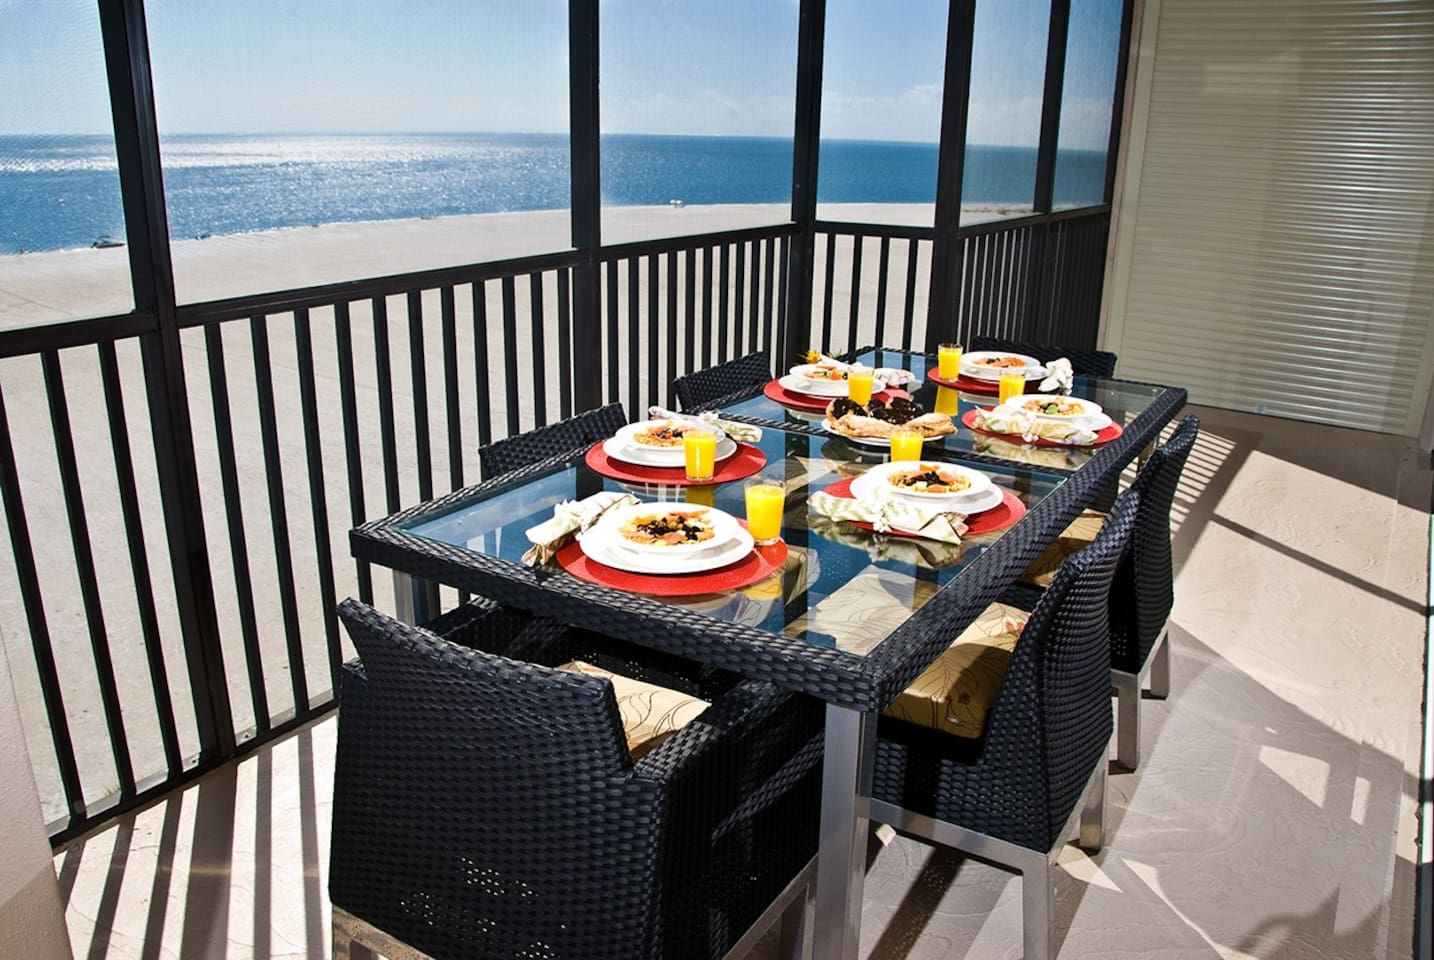 Direct beachfront and south island location.  7th floor Penthouse that sleeps up to 10 guests.